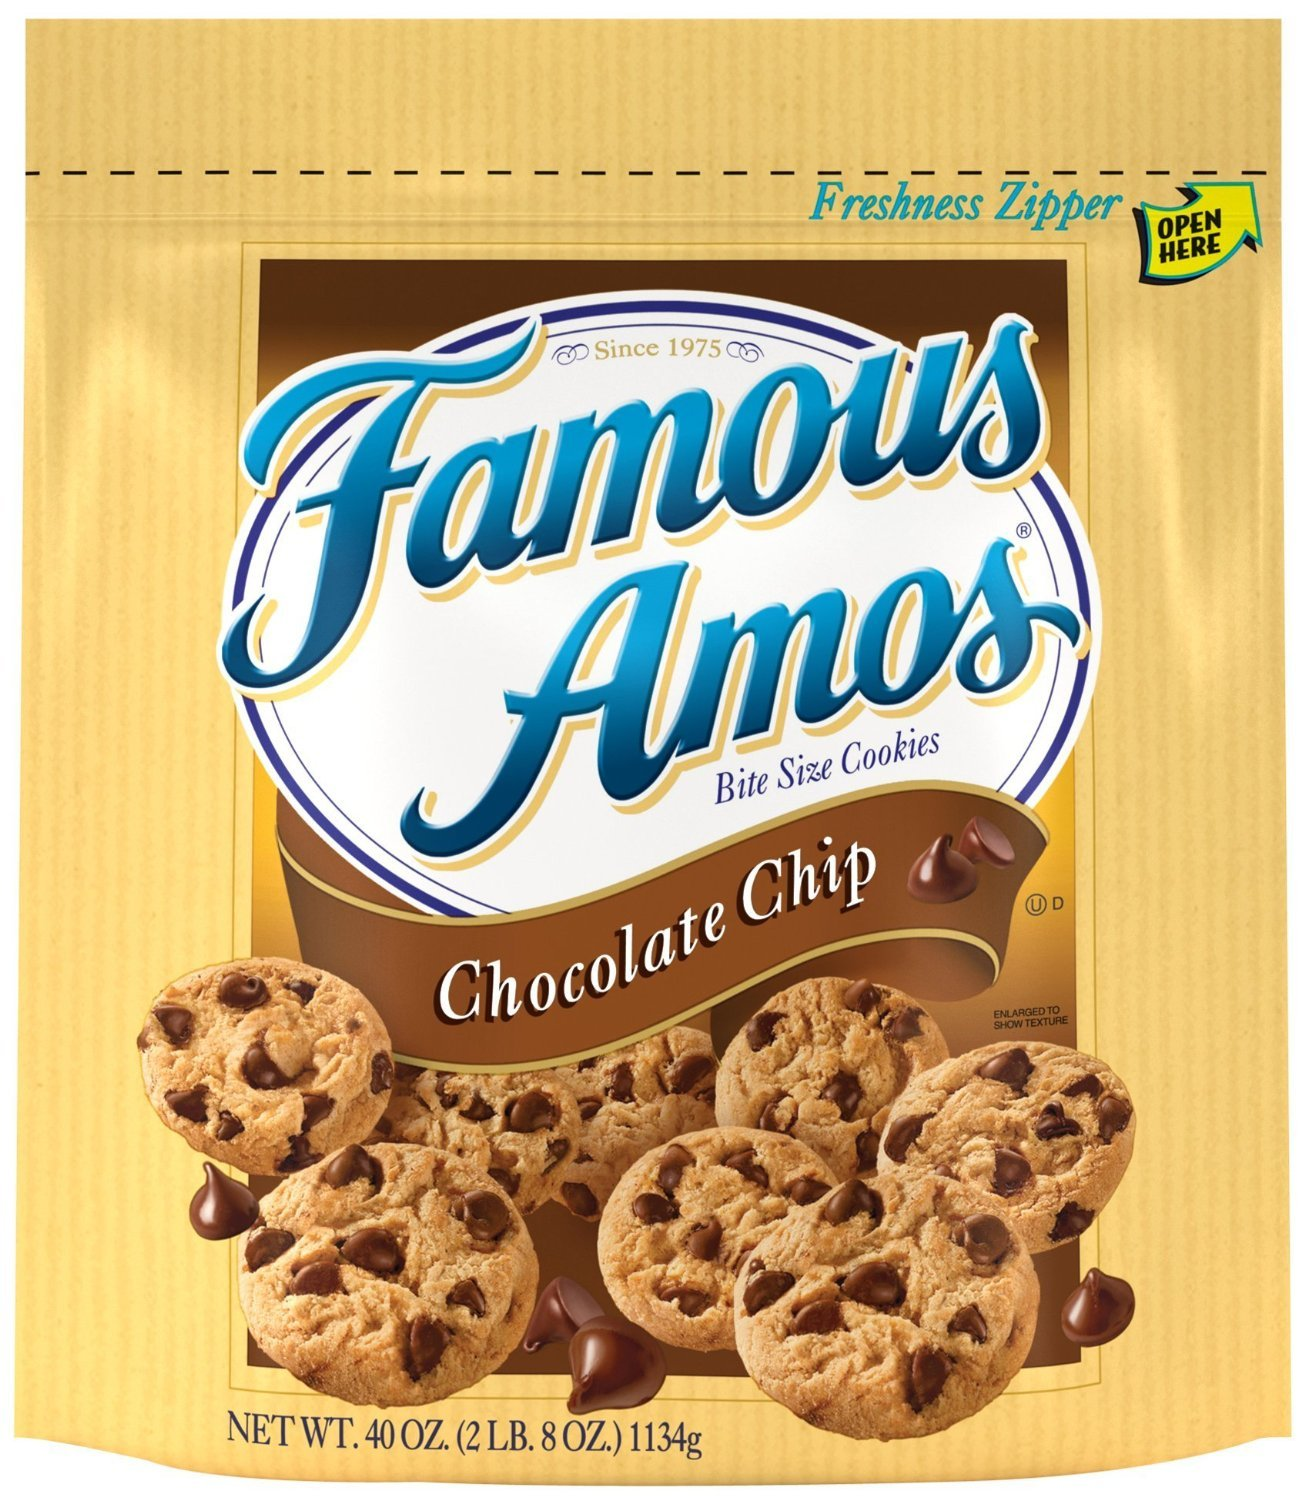 Worksheet Famous Amos amazon com famous amos bite size cookies chocolate chip 40 ounce bag